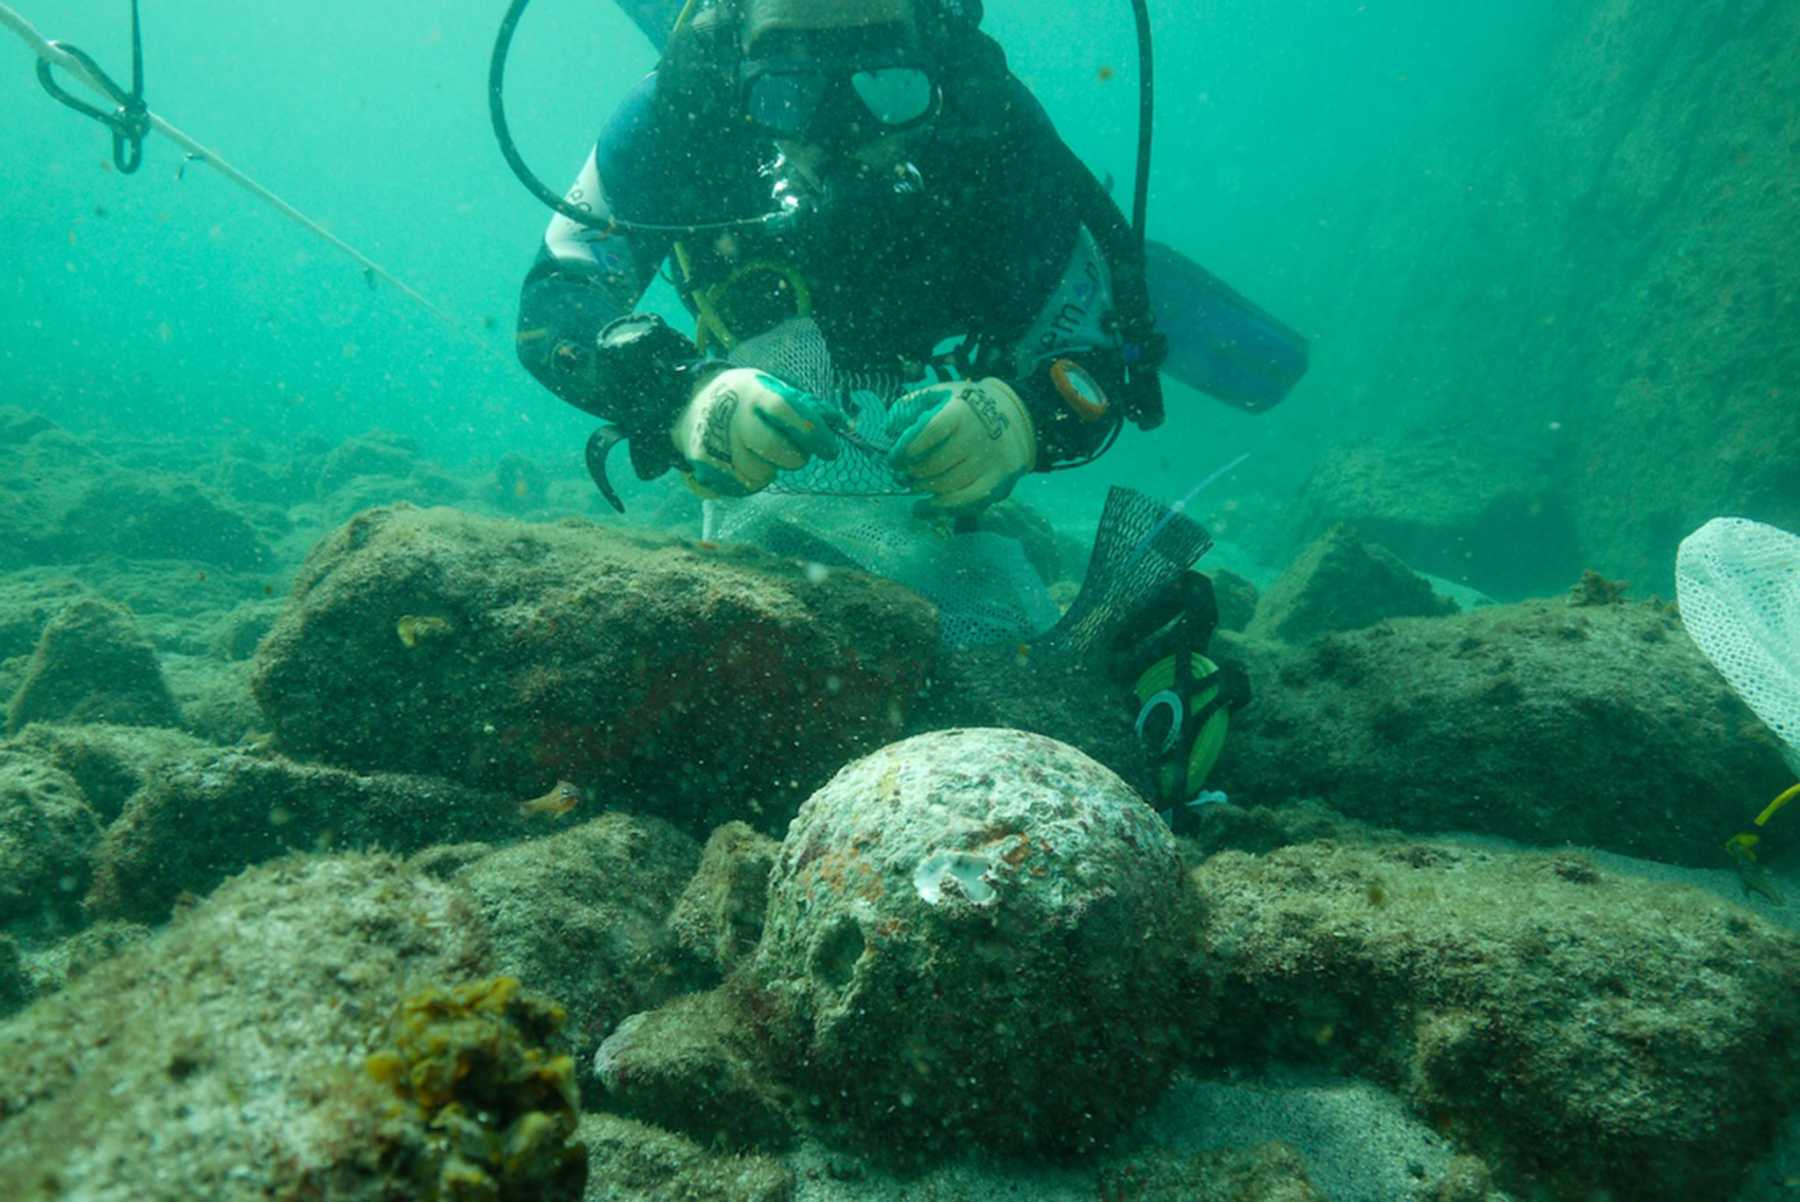 Shipwreck Believed To Be From Vasco Da Gama's Famed Fleet | Vasco da Gama